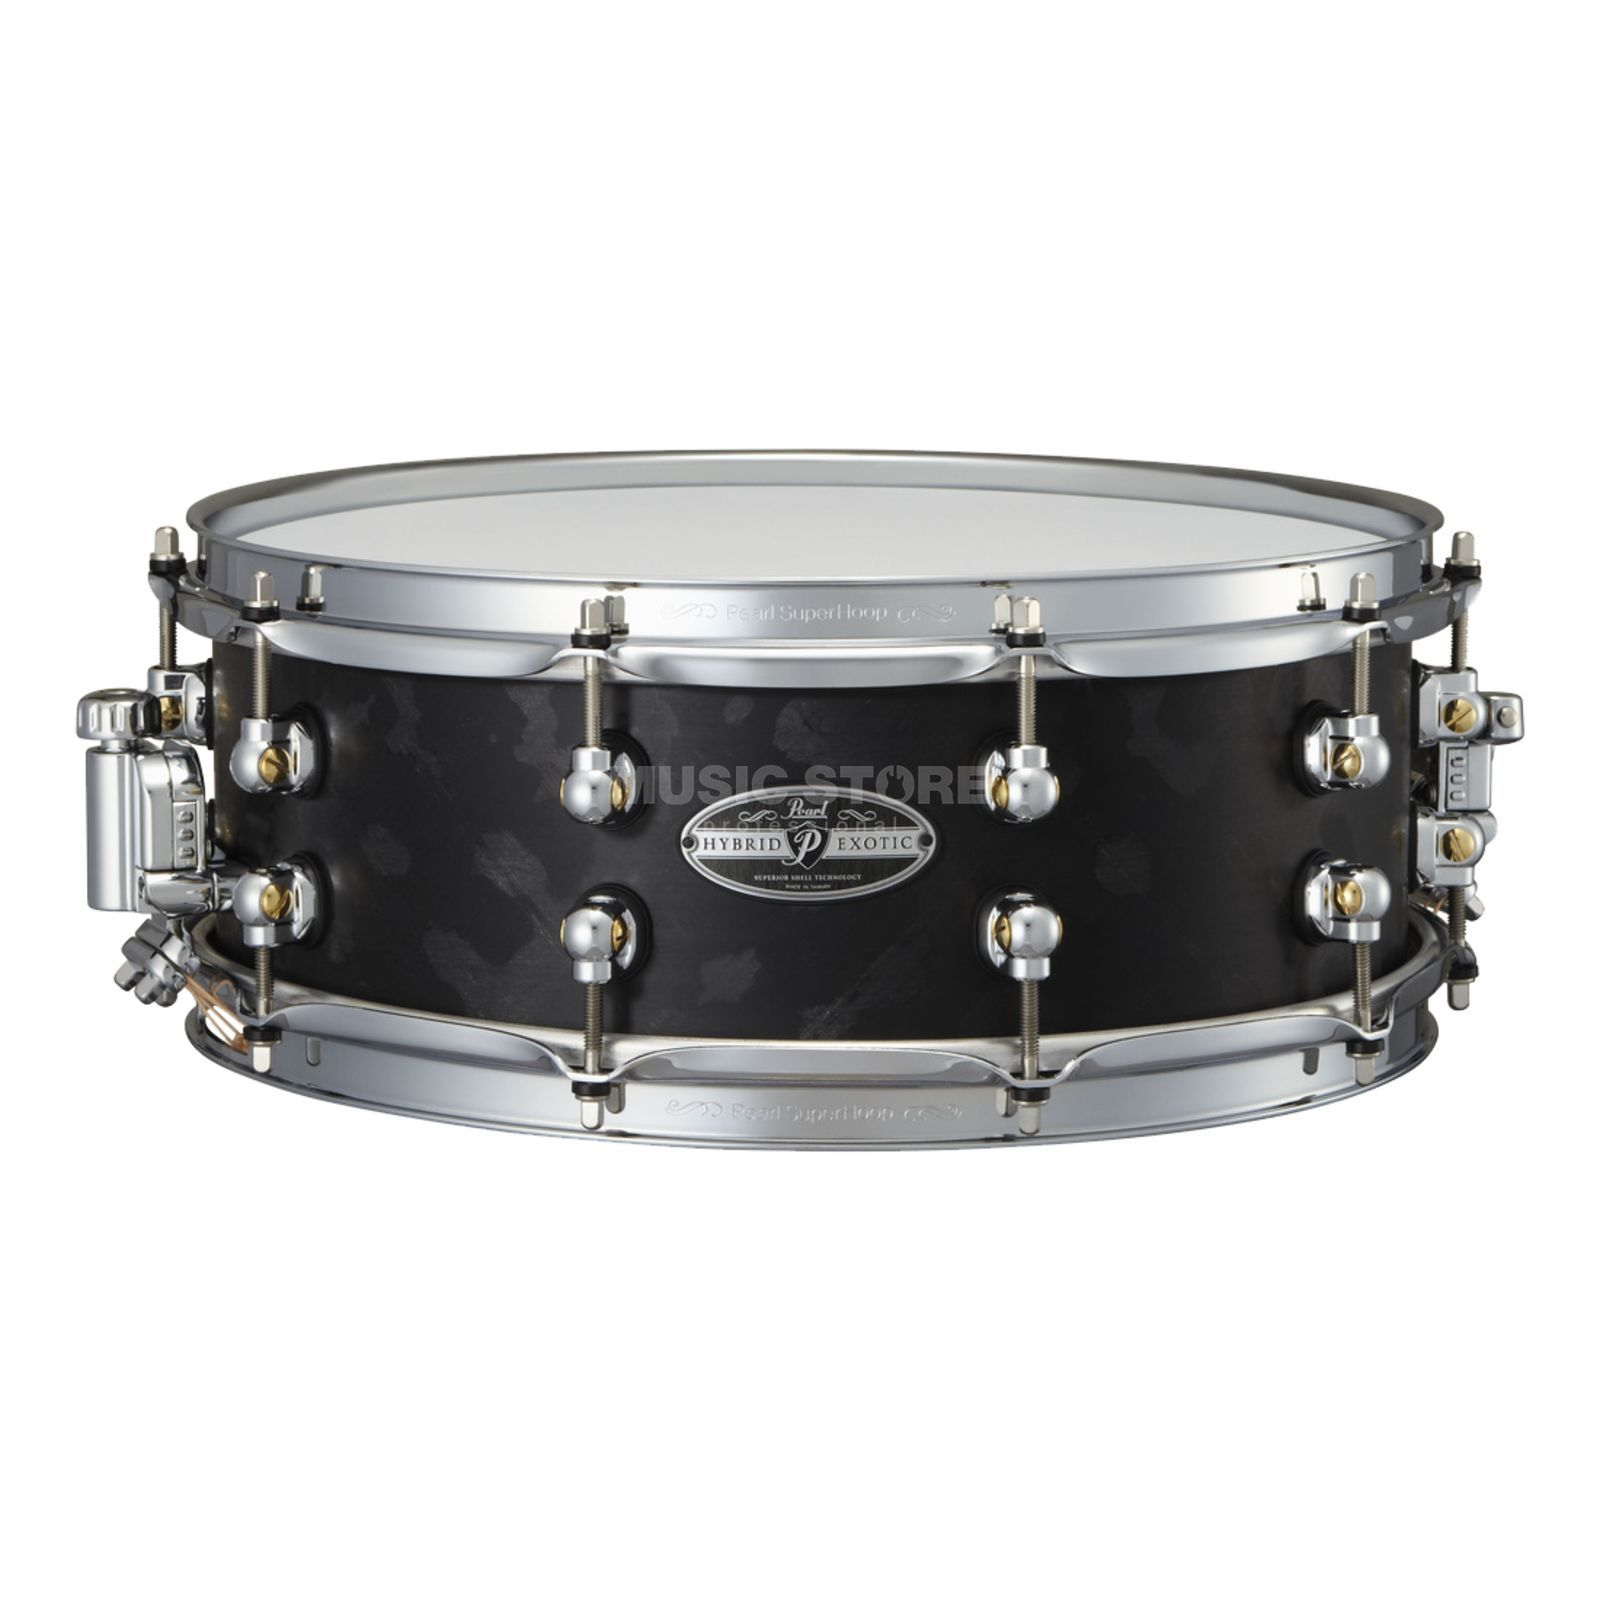 "Pearl Hybrid Exotic Snare 14""x5"", HEP-1450, Vectorcast Produktbild"